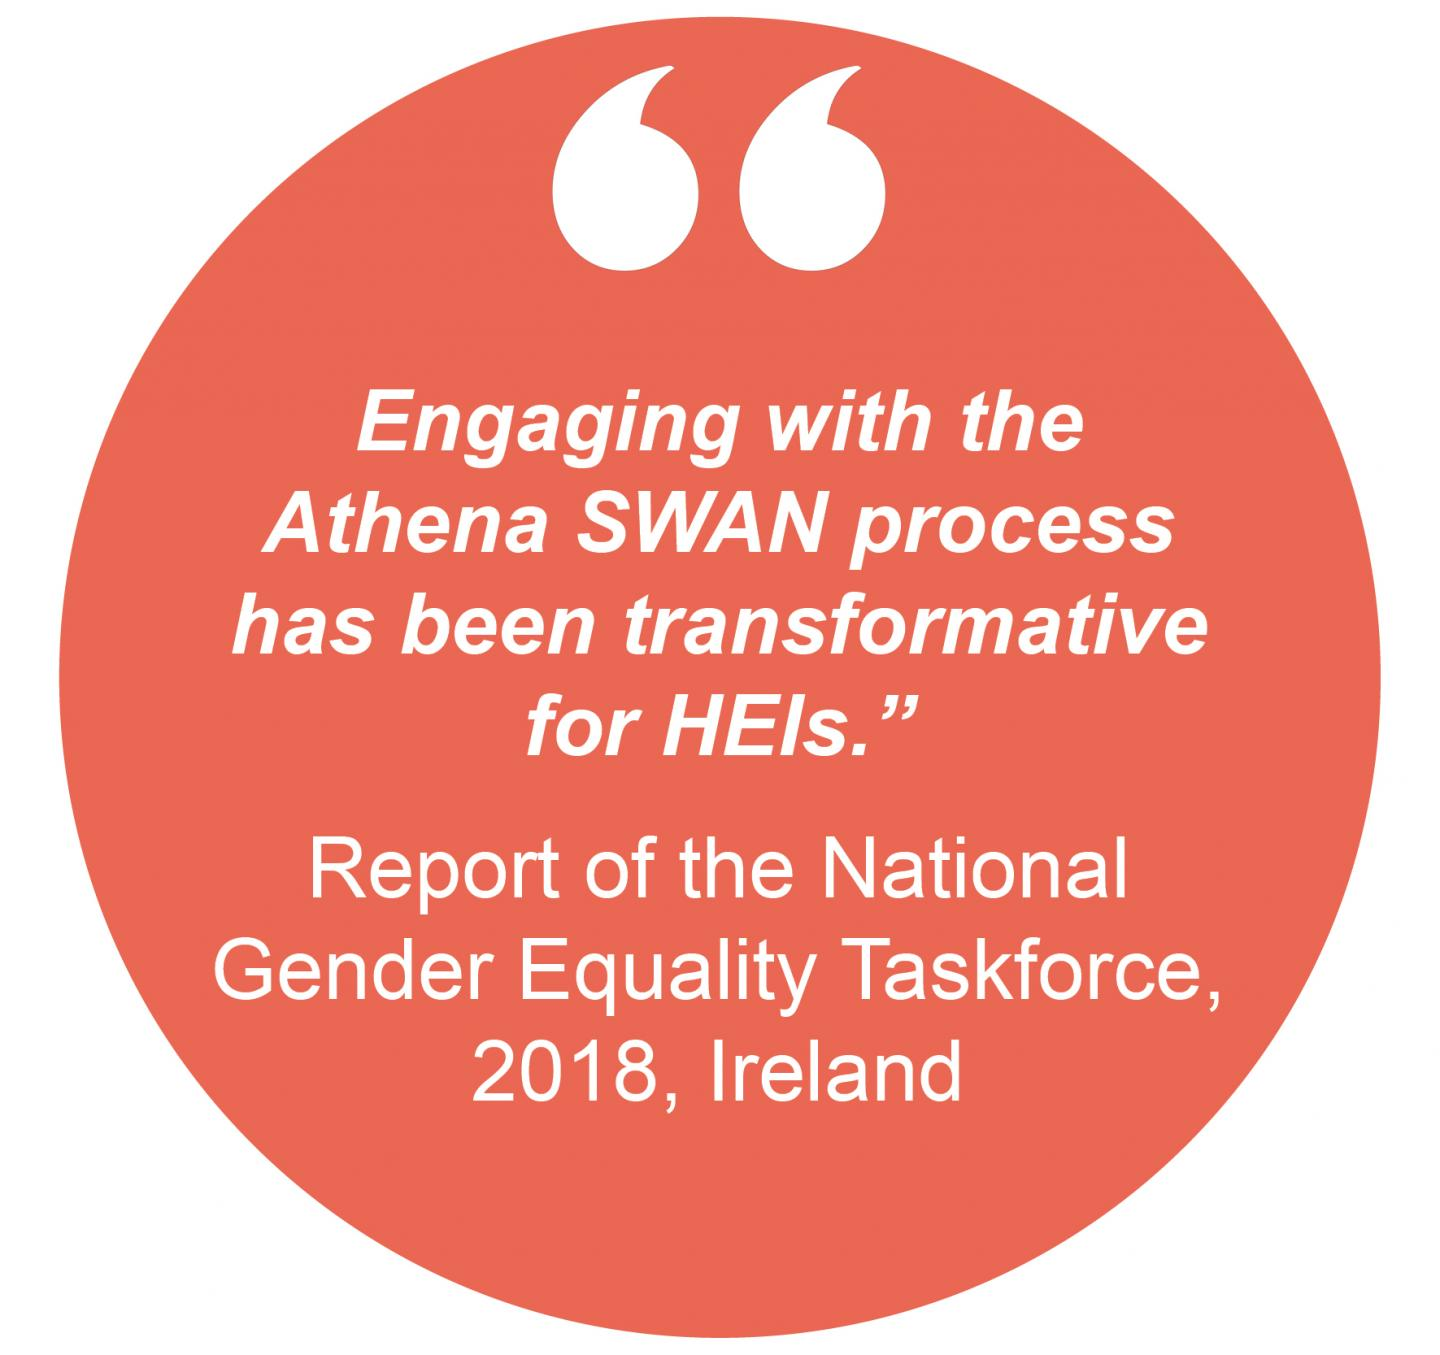 """Engaging with the Athena SWAN process has been transformative  for HEIs."" Report of the National Gender Equality Taskforce, 2018, Ireland"